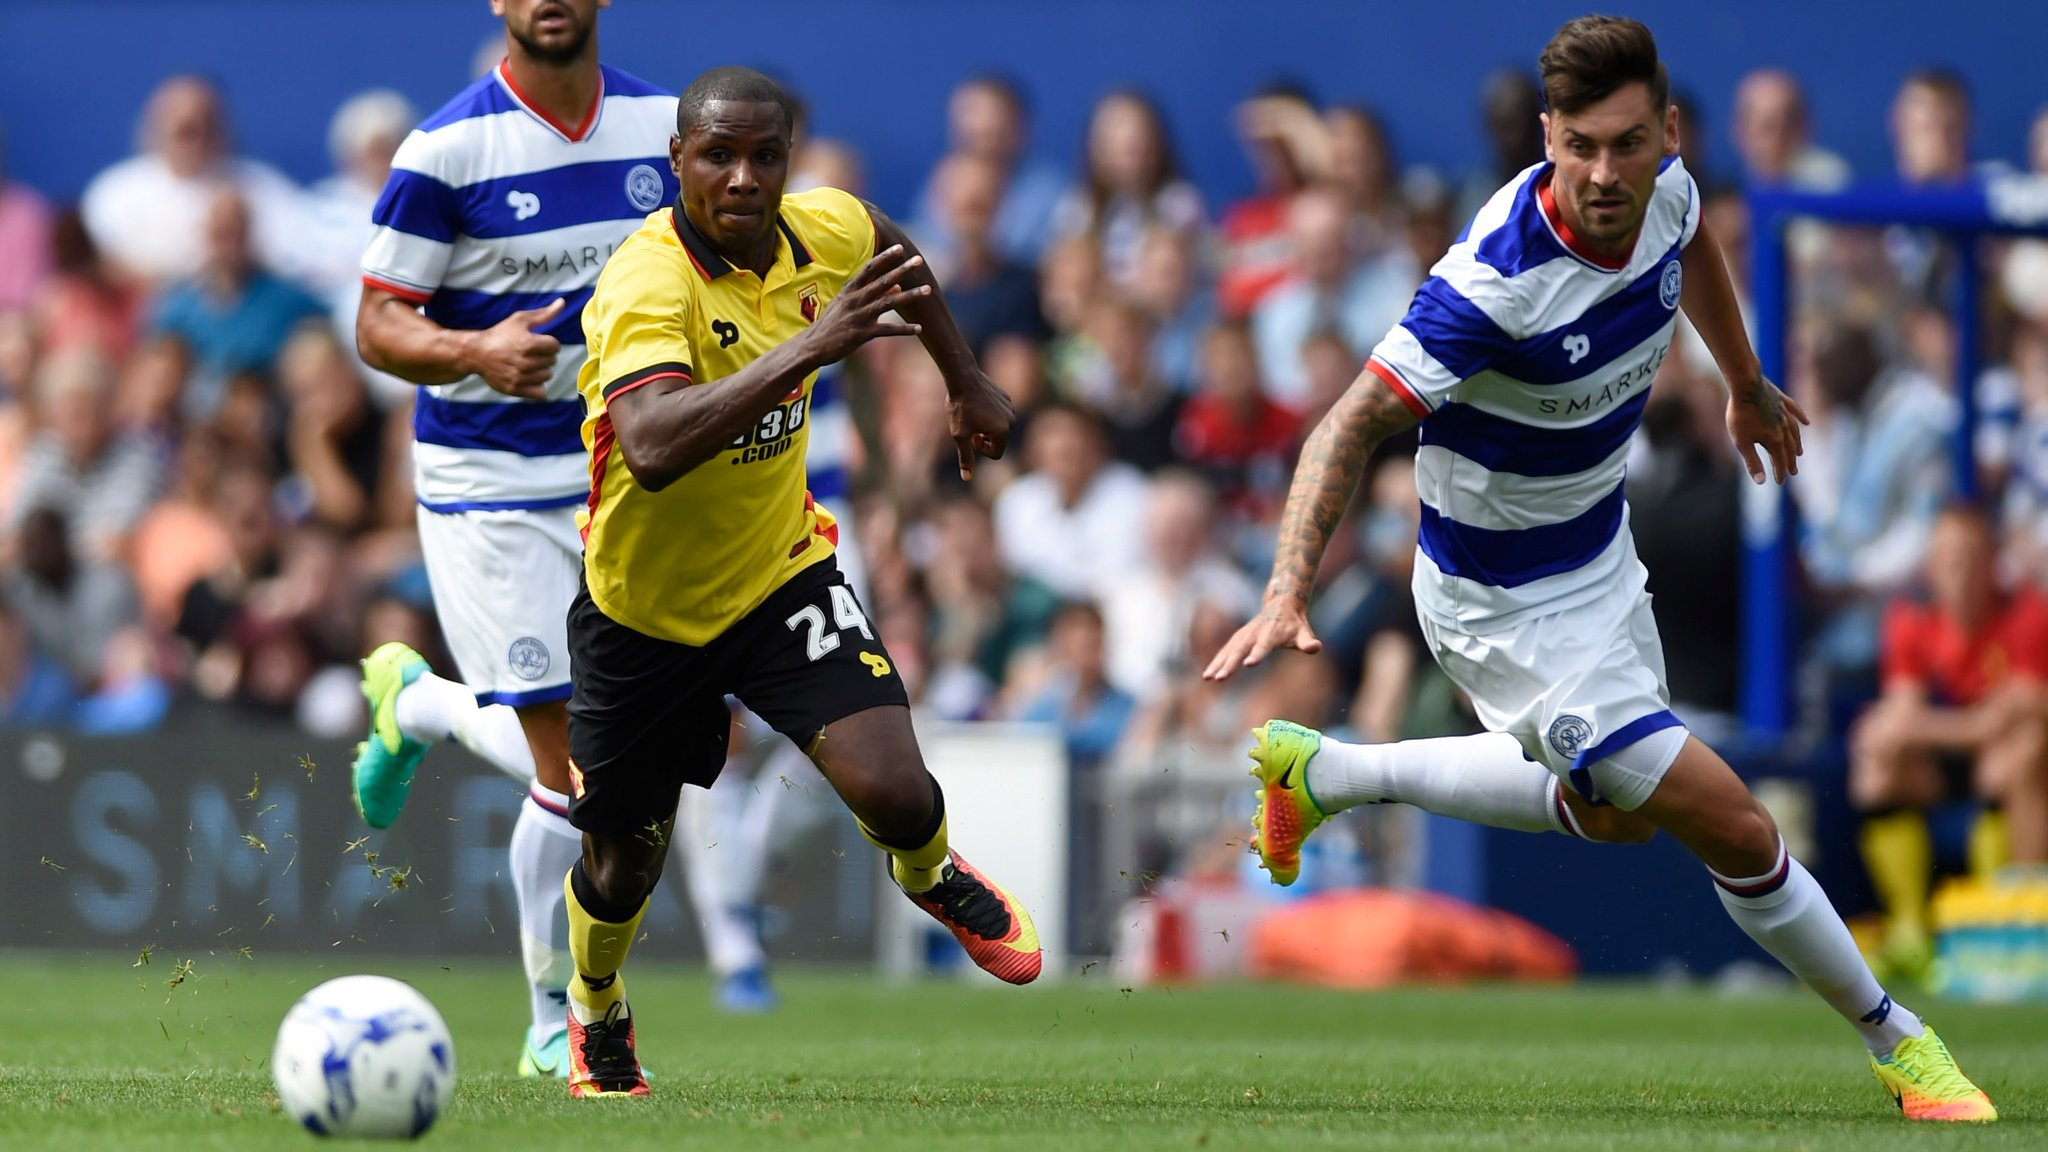 Ighalo Unlucky, Success Subbed On As Watford Fall To QPR